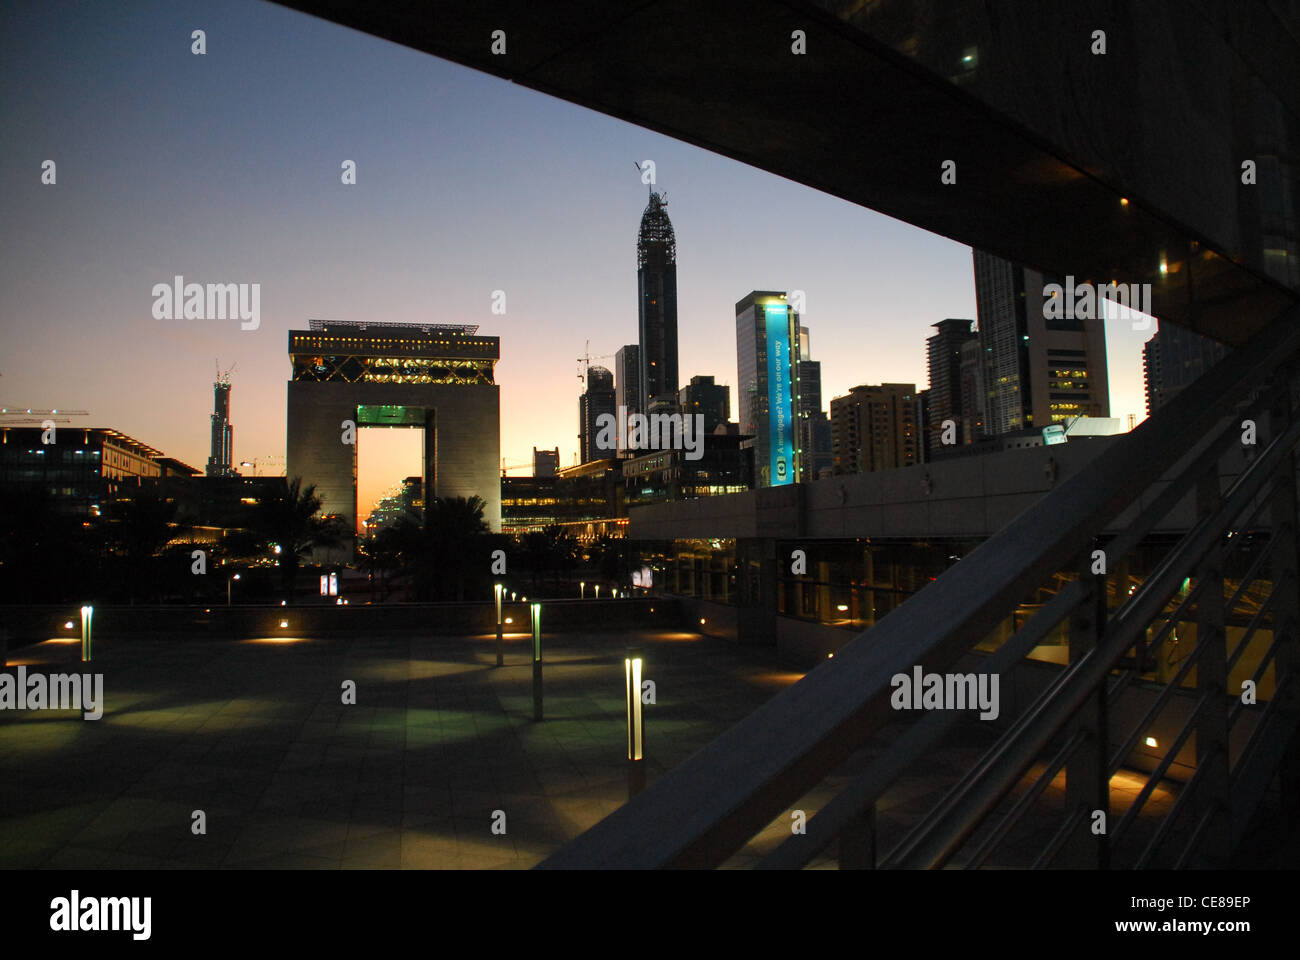 The Dubai Intl Financial Center (DIFC) representing the world's leading players in financial services, banking, - Stock Image